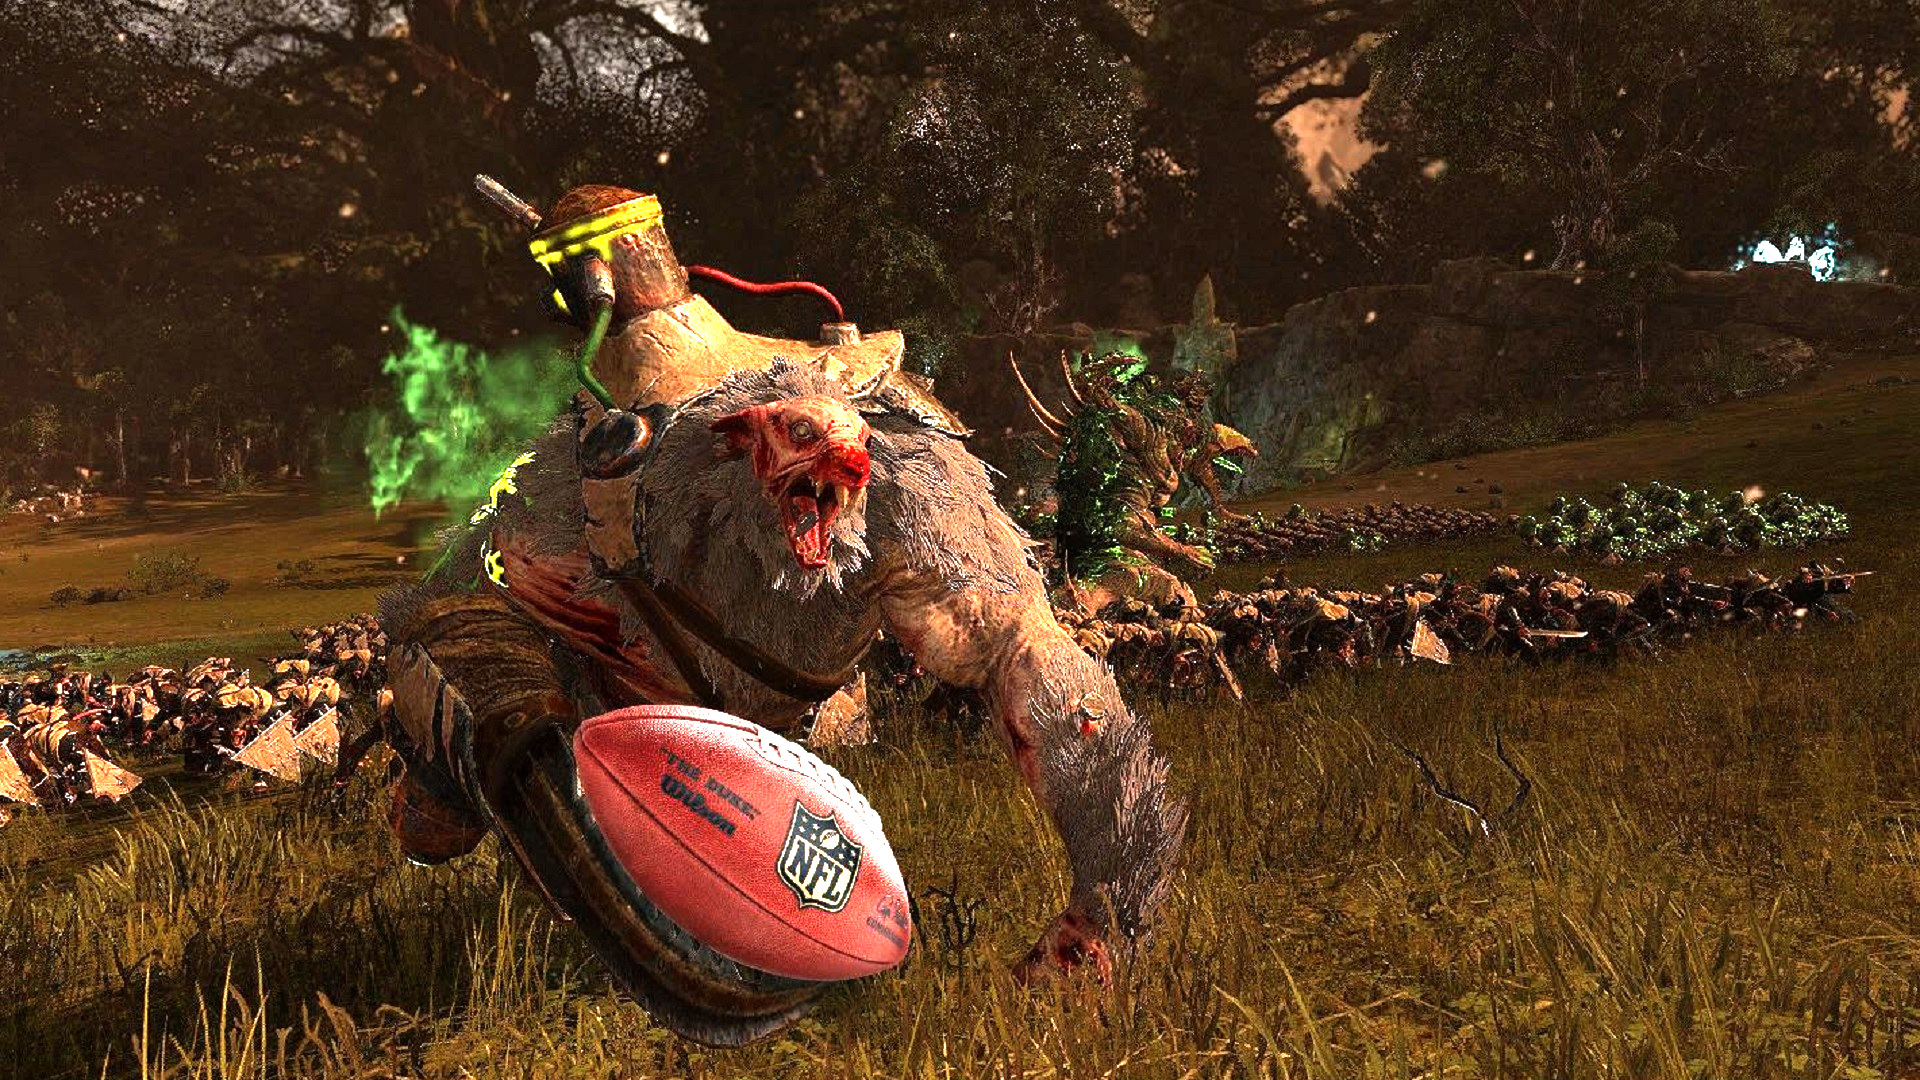 Warhammer 3 should settle fights with games of Blood Bowl